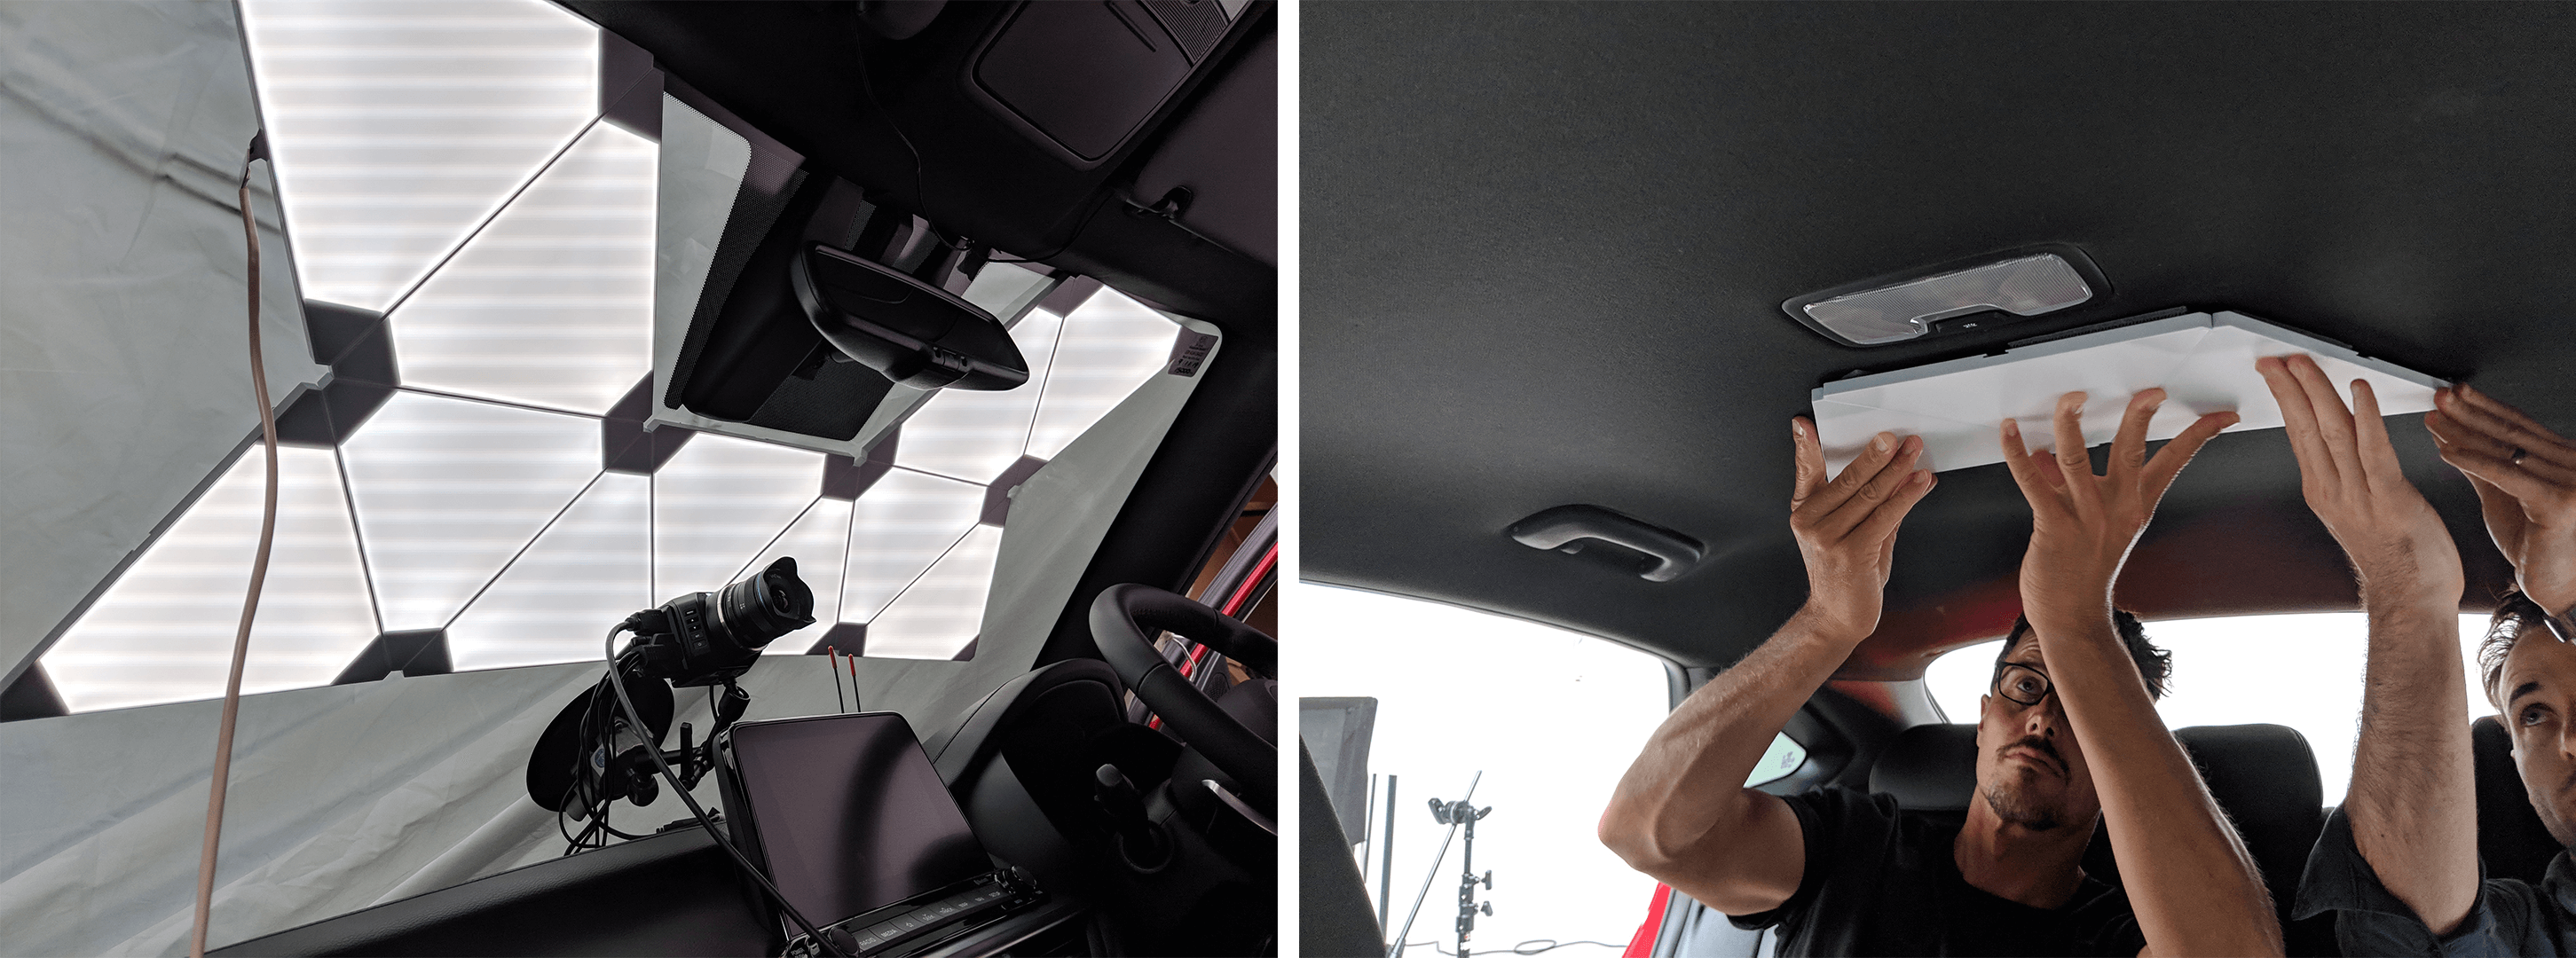 Attaching Nanoleaf lighting panels to a Kia car